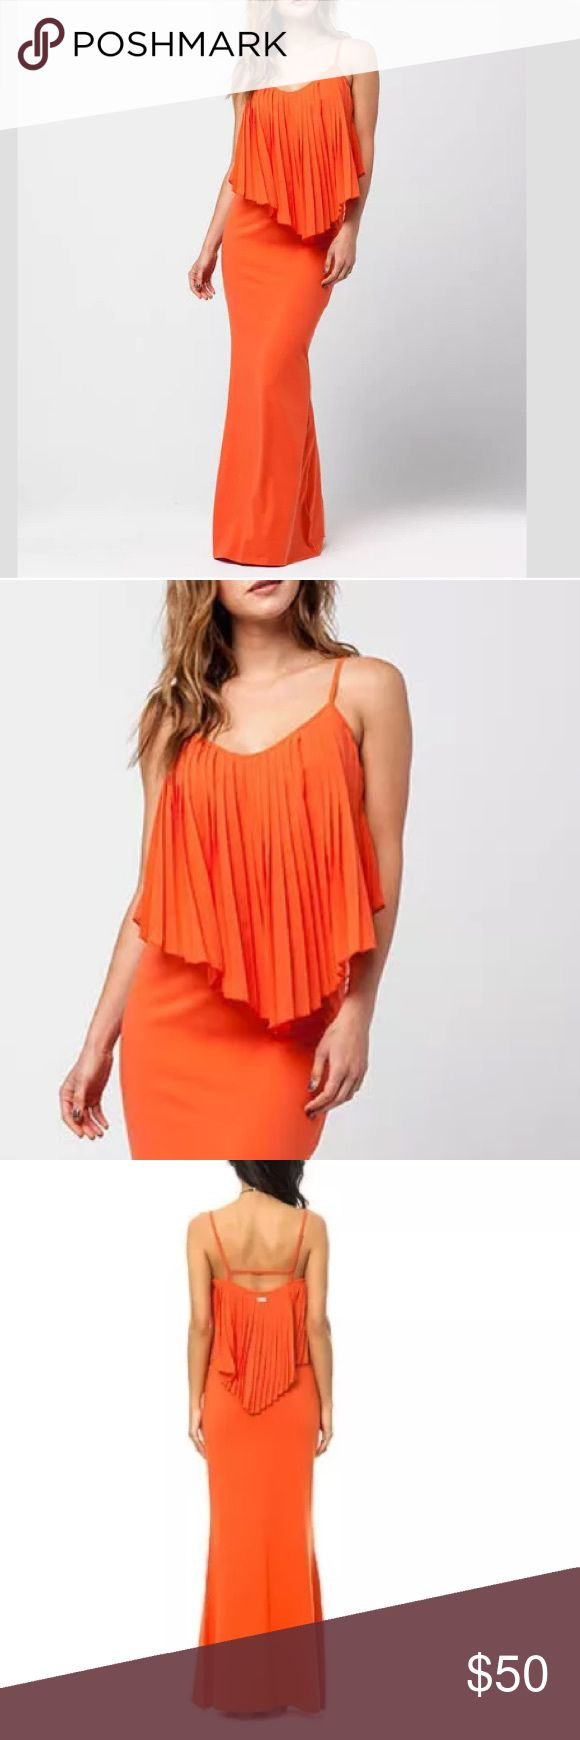 "RVCA  ""Chaac"" Maxi Orange Body-Con Strap Dress Size: Small - Brand New with Original Tags - Retail: $66.00   Adjustable Straps - Pleated Chiffon Bodice Overlay on Chest - Tighter Fit Max Dress   Approx 55"" Length - Body- Con Fit - 97% Cotton, 3% Spandex - Does have some Stretch   Orange Sherbet Color -  Great Summer Maxi or Dressed Up for a Summer Wedding  - No Trades RVCA Dresses Maxi"